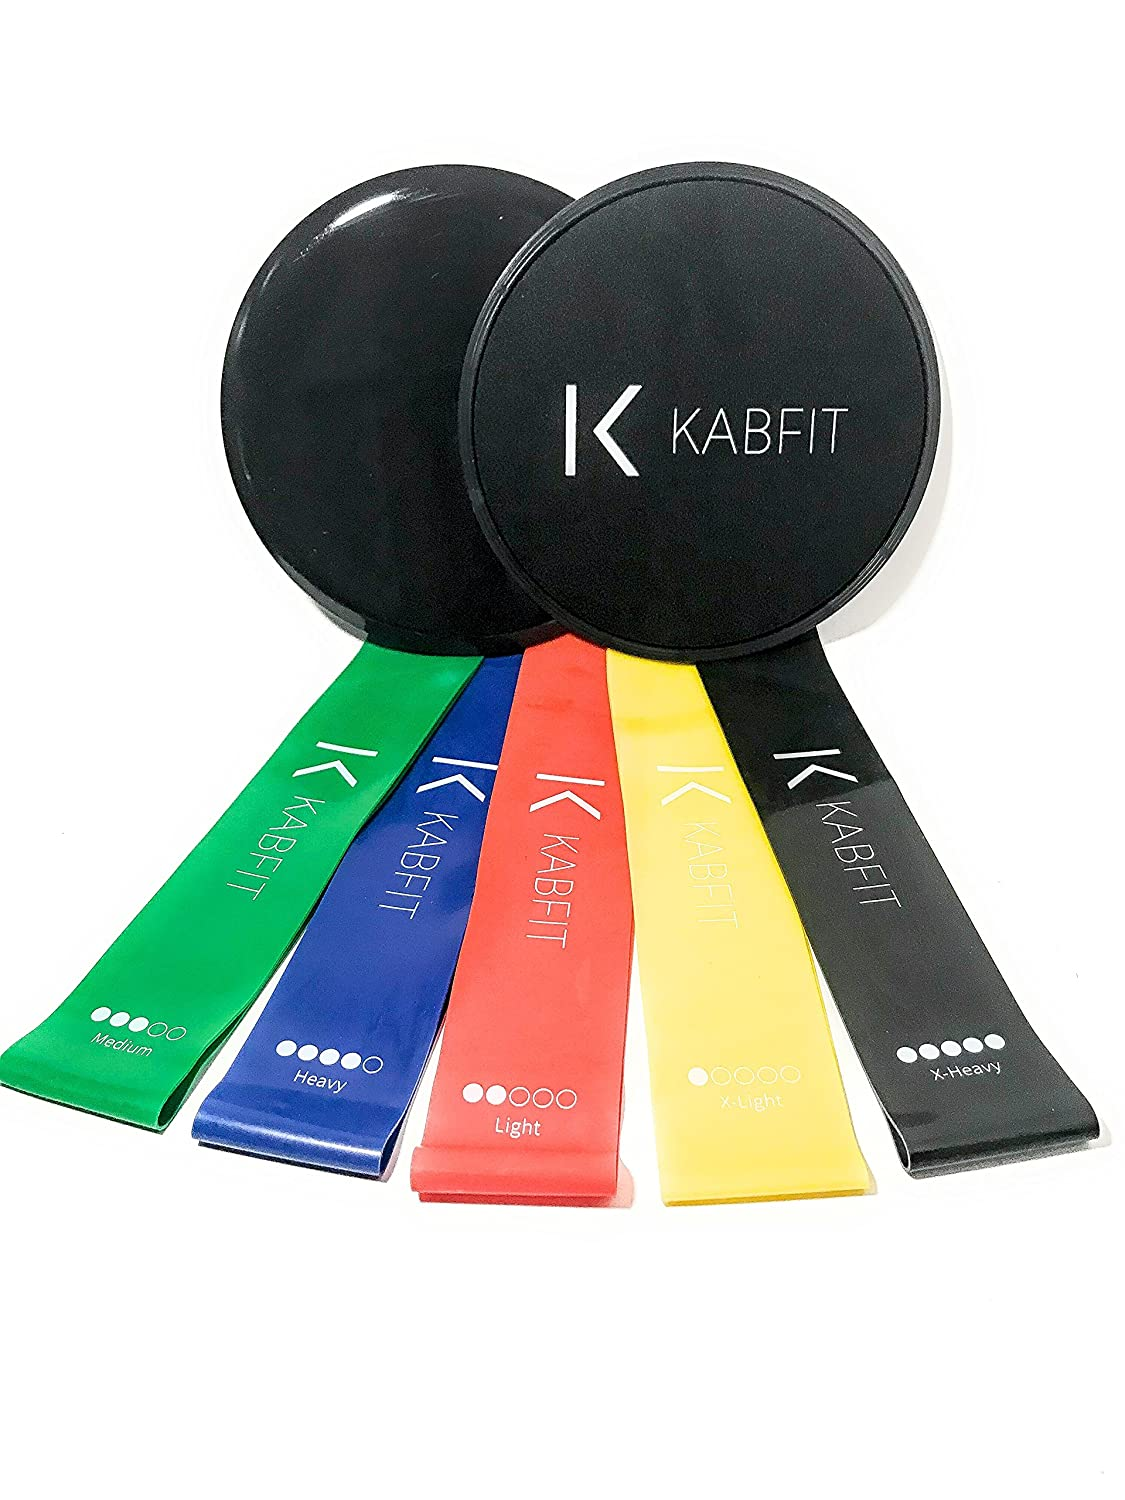 Kabfit Gliding Disc Core Sliders and 5 Exercise Resistance Loop Bands, Double-sided Sliding Discs, Resistance Bands for Intense, Low-Impact Exercises, Strengthen Core, Glutes, Abs Fitness, Therapy